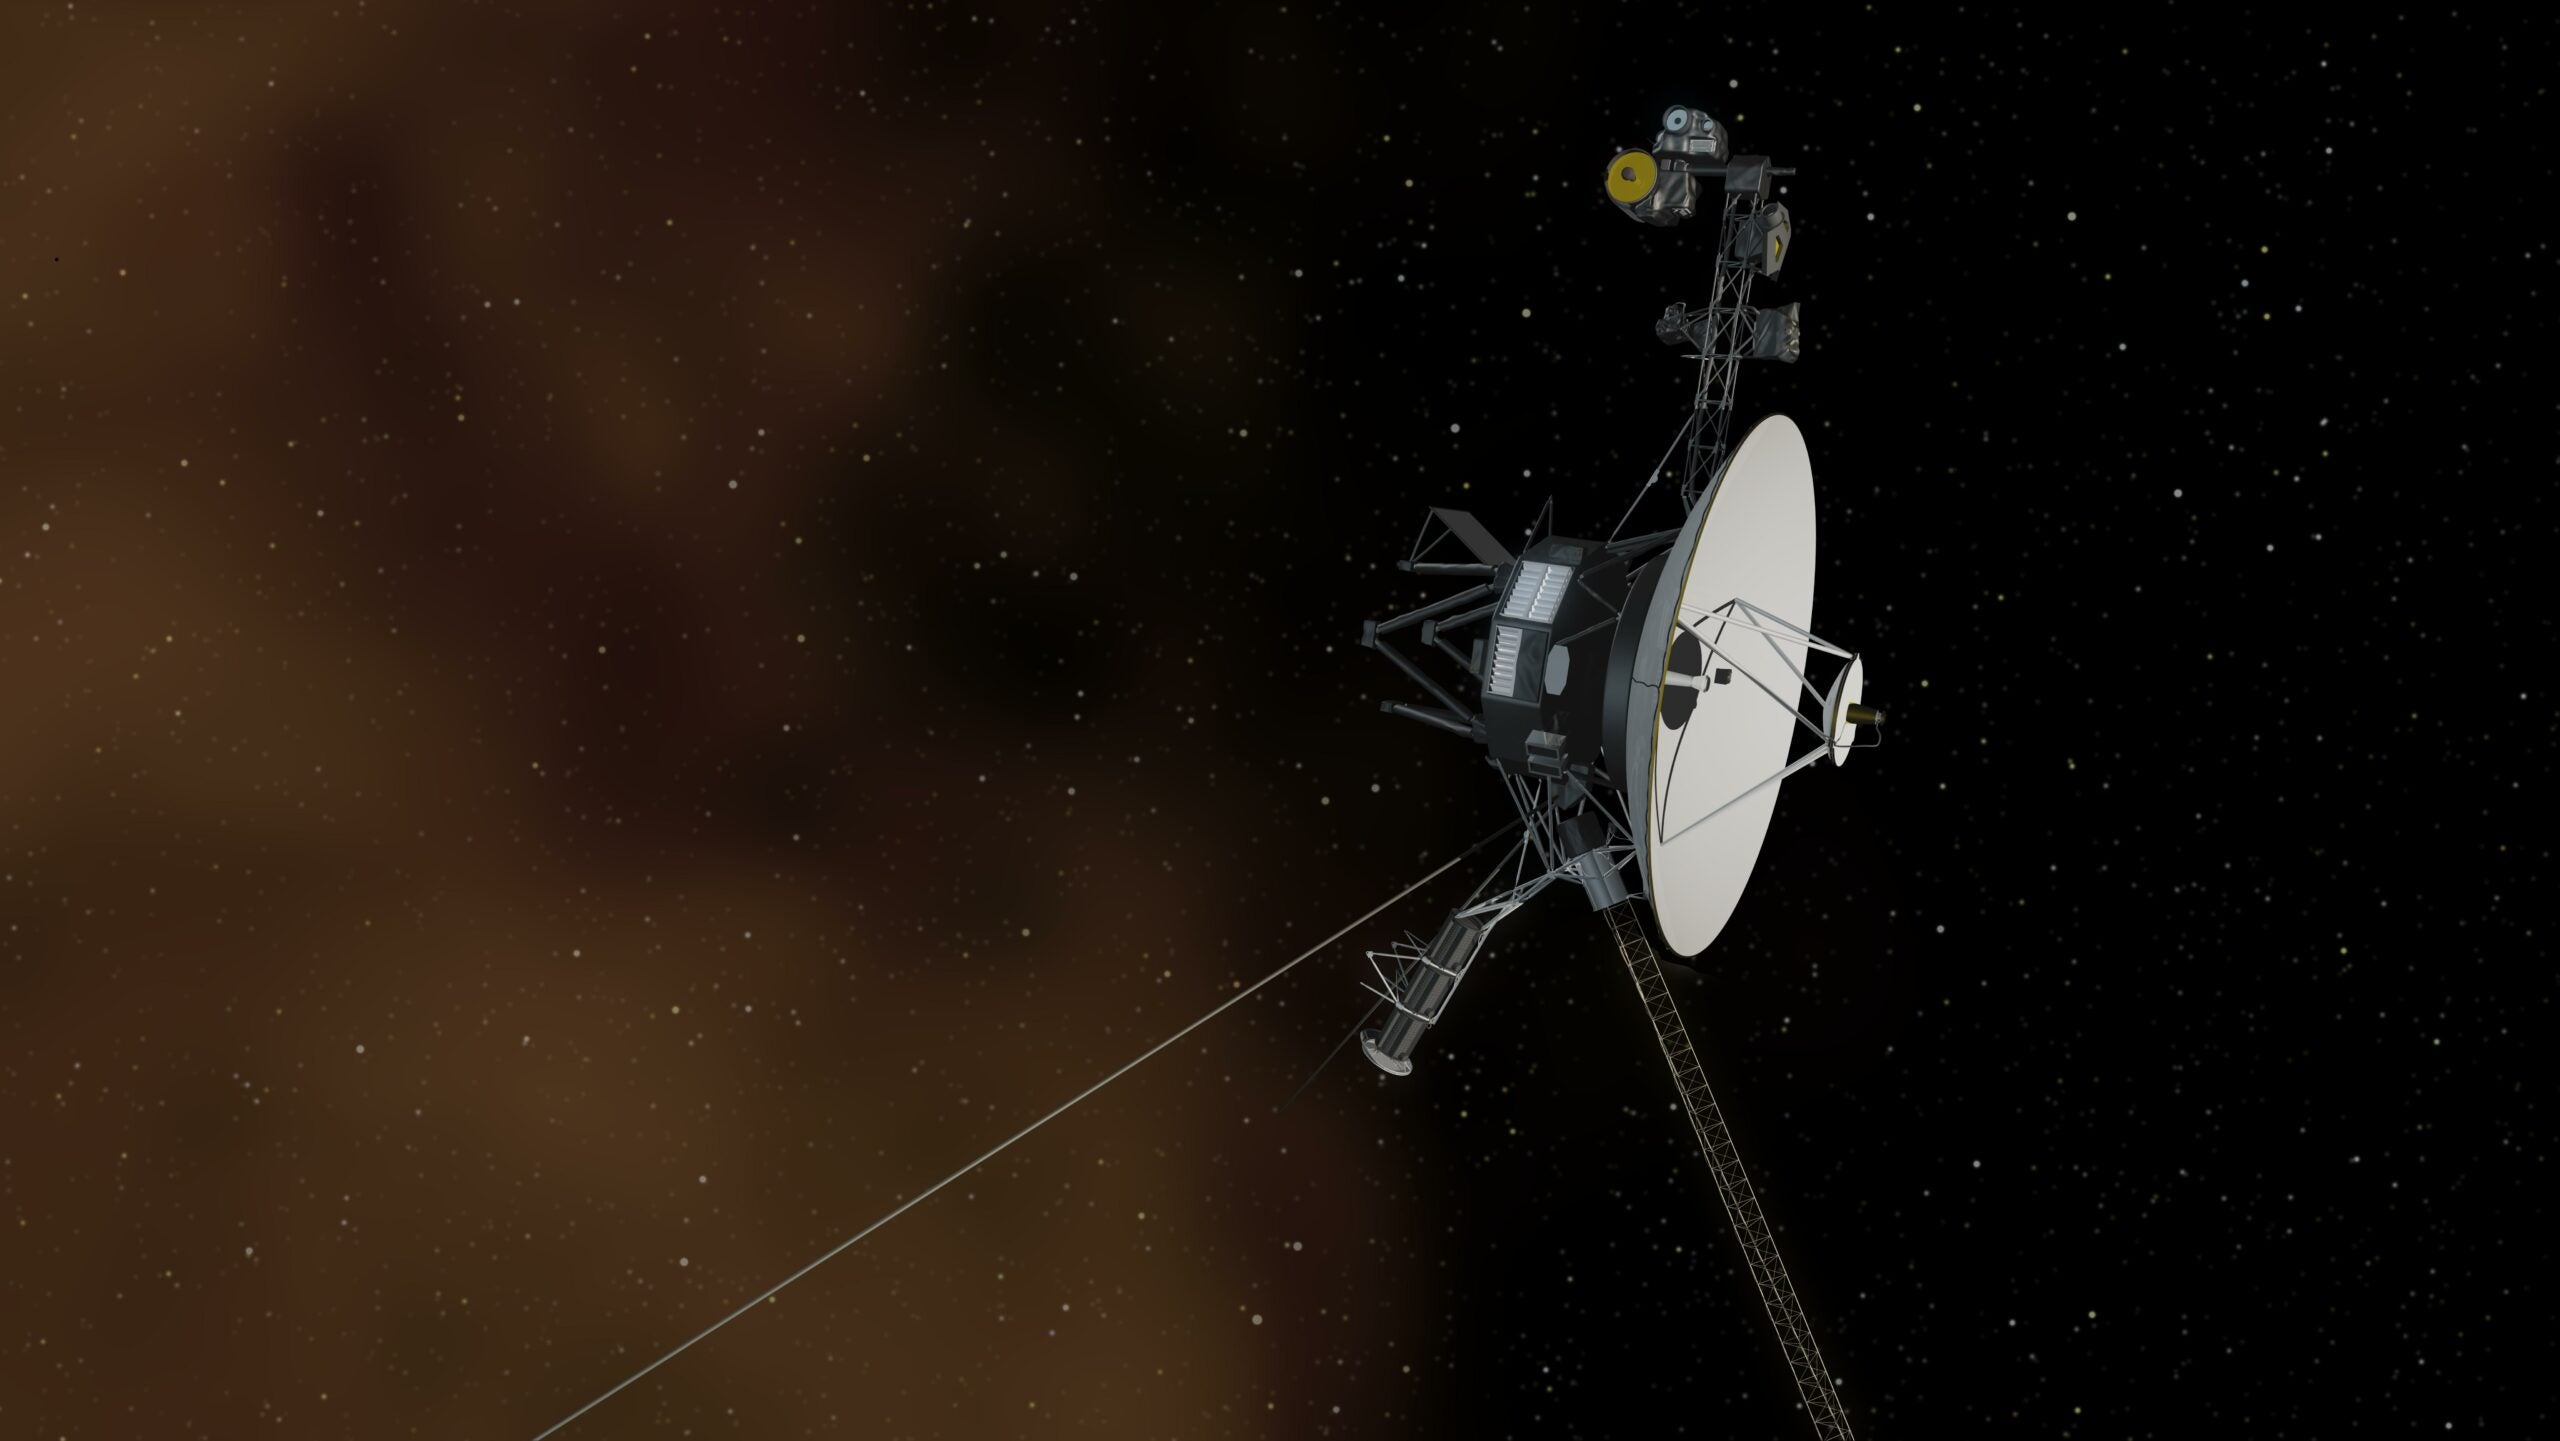 An artist's illustration depicting Voyager 1 in interstellar space